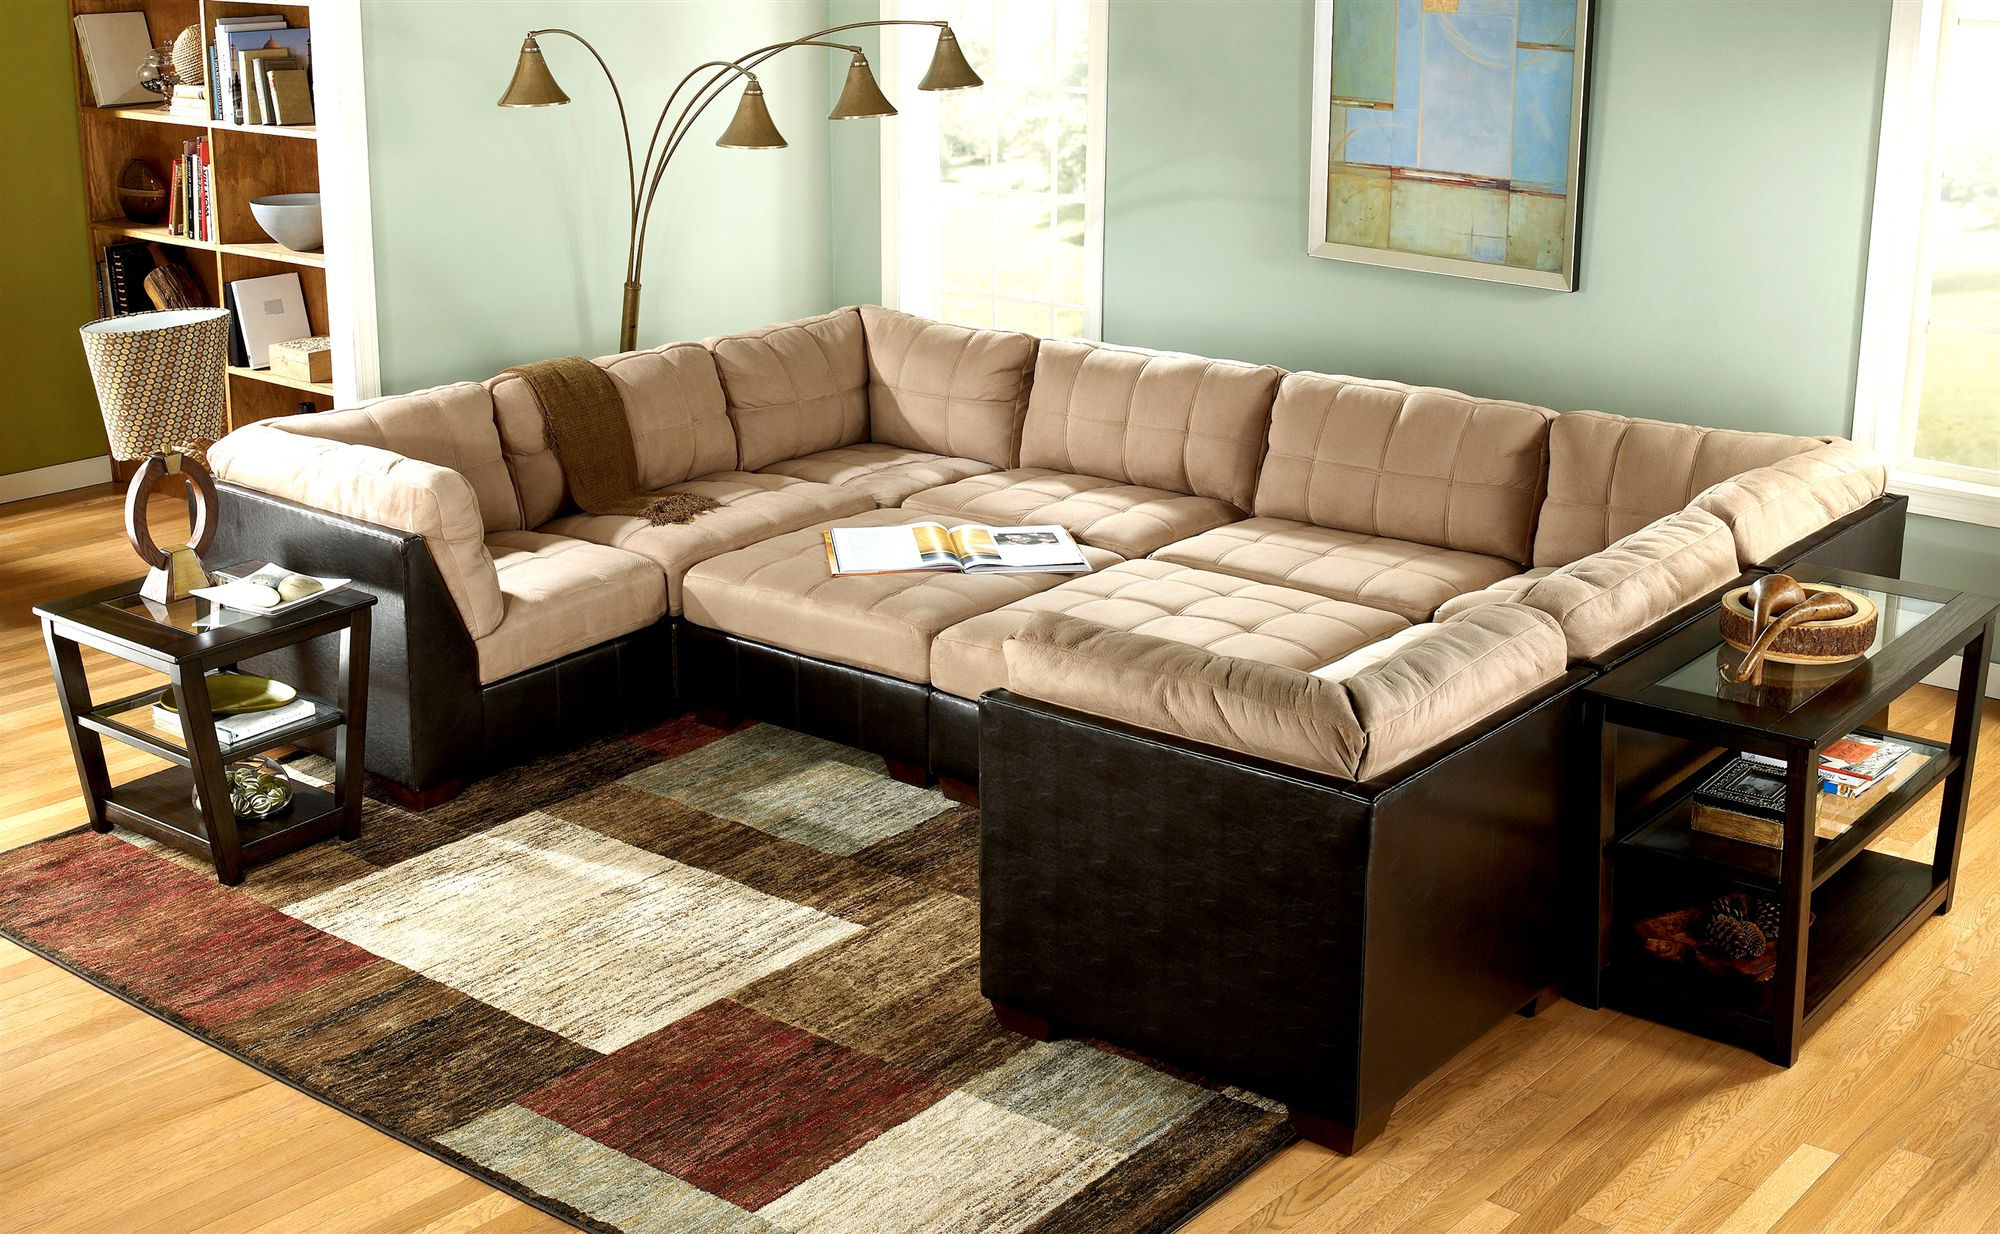 Living room ideas with sectionals sofa for small living for Couch living room ideas